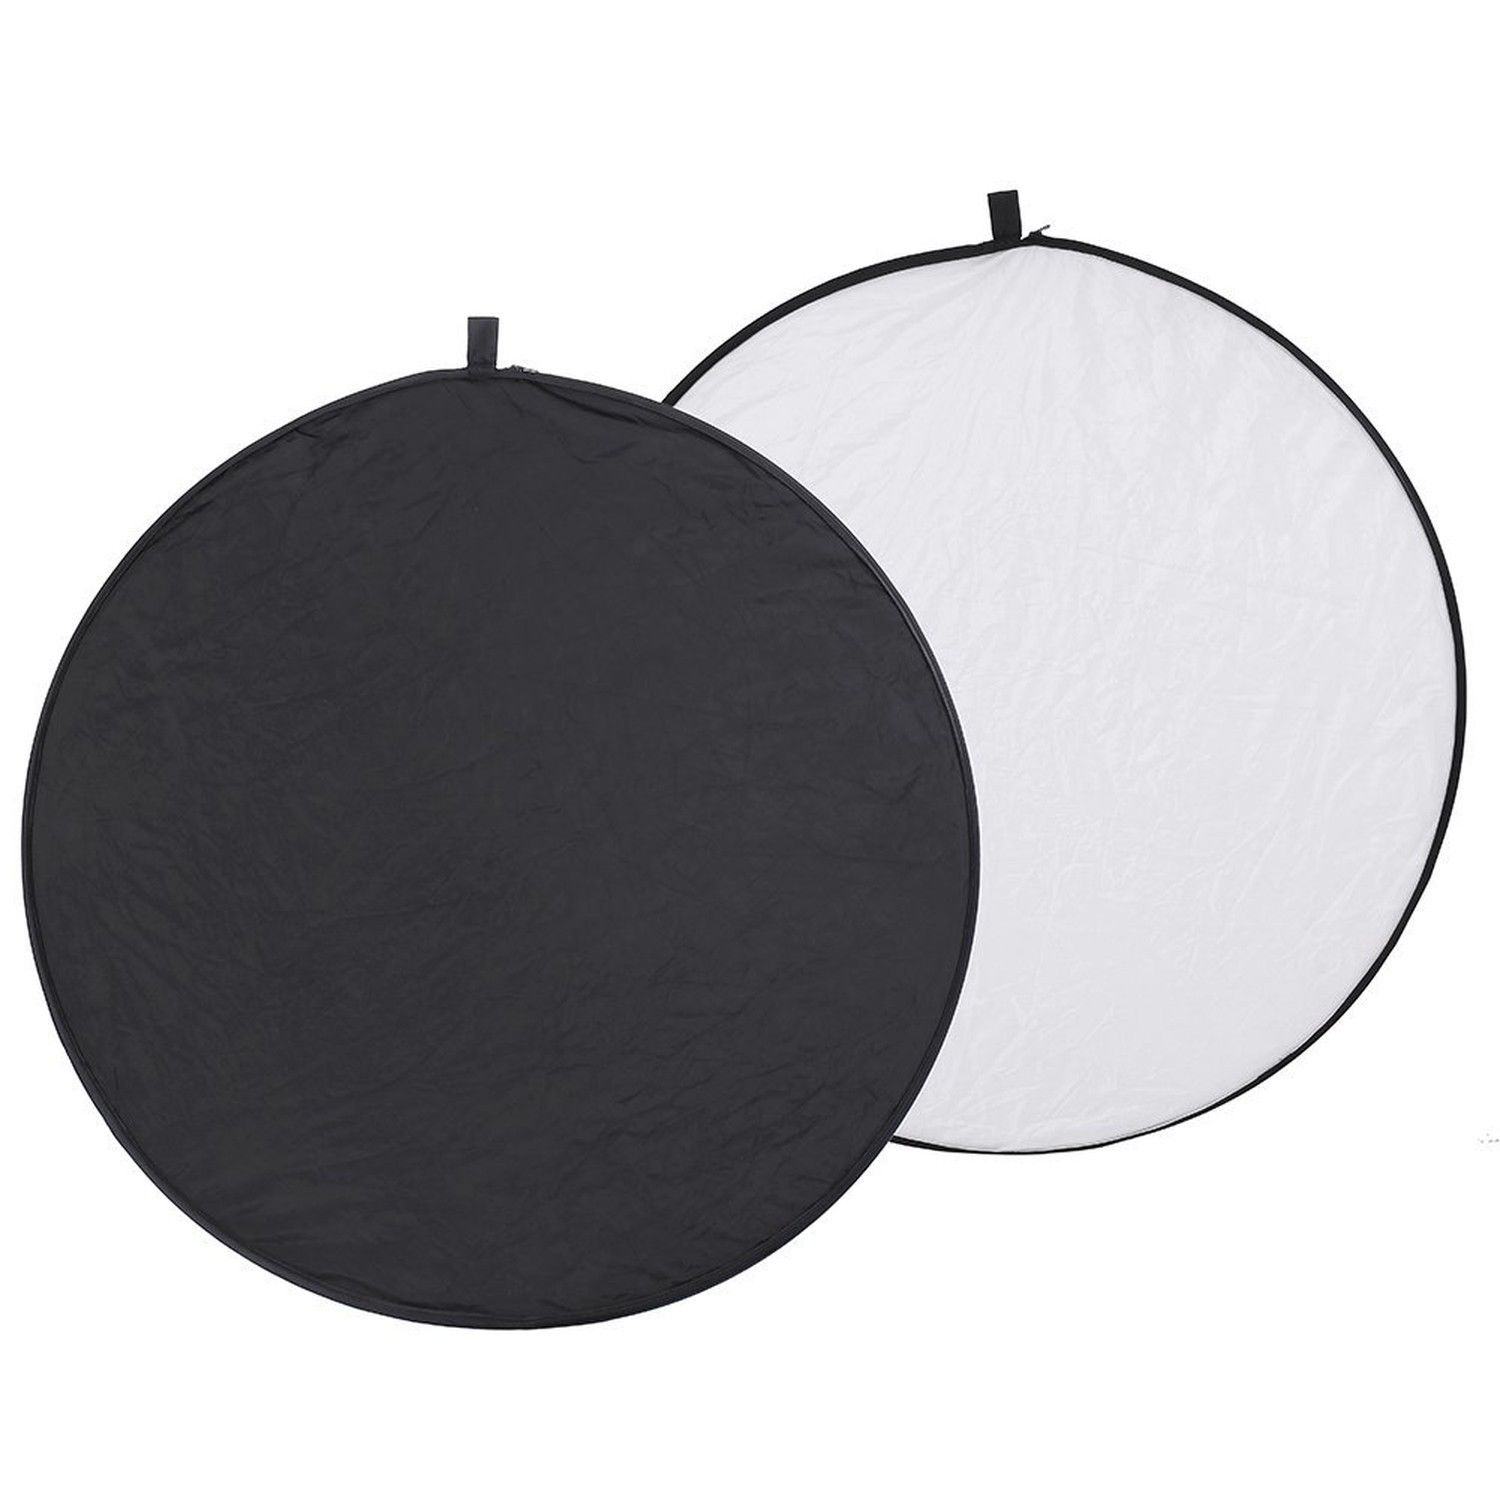 Neewer Pro 2-in-1 43//110cm Round Collapsible Reflector Diffuser White//Silver for Photography and Video Shooting with A Carrying Pouch